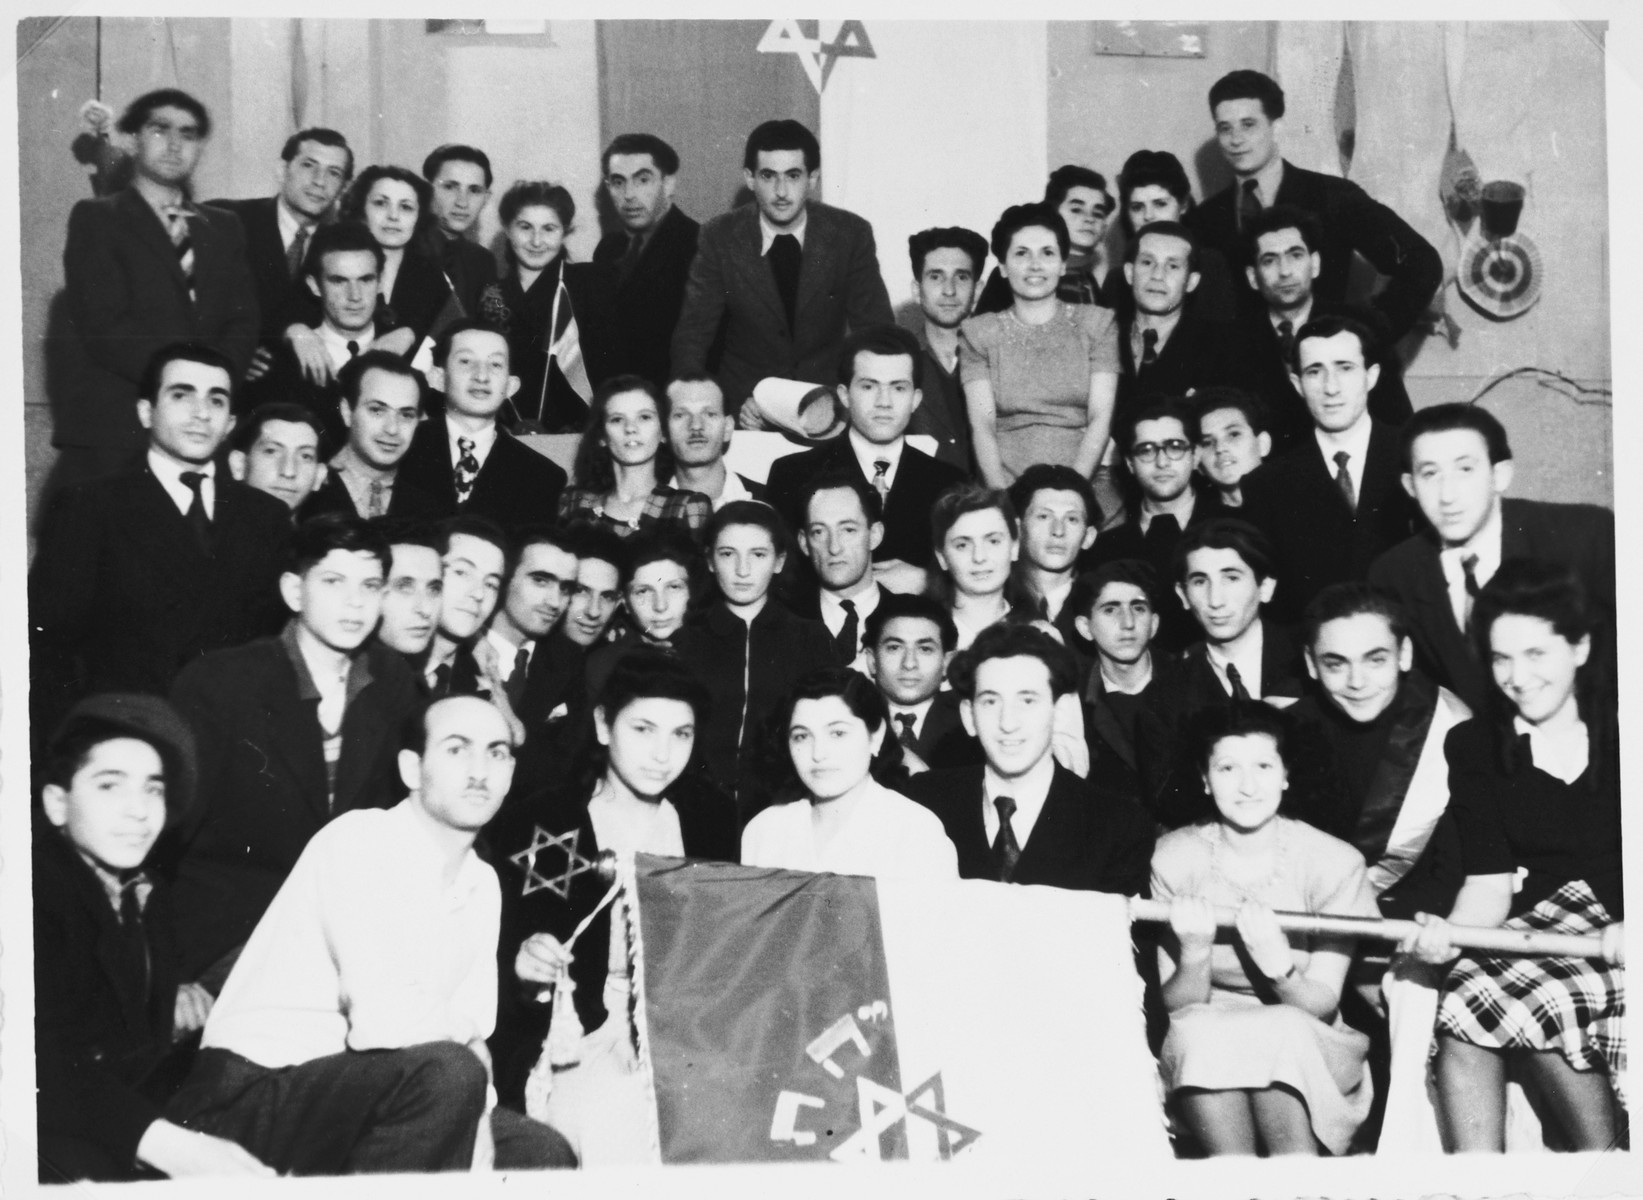 A large group of Jewish DPs pose with Zionist flags in the Cremona DP camp.  Those pictured include Shie Zoltak, Nusia, Frank Kaminski, Motele Hostik and Chalina Libeskind.